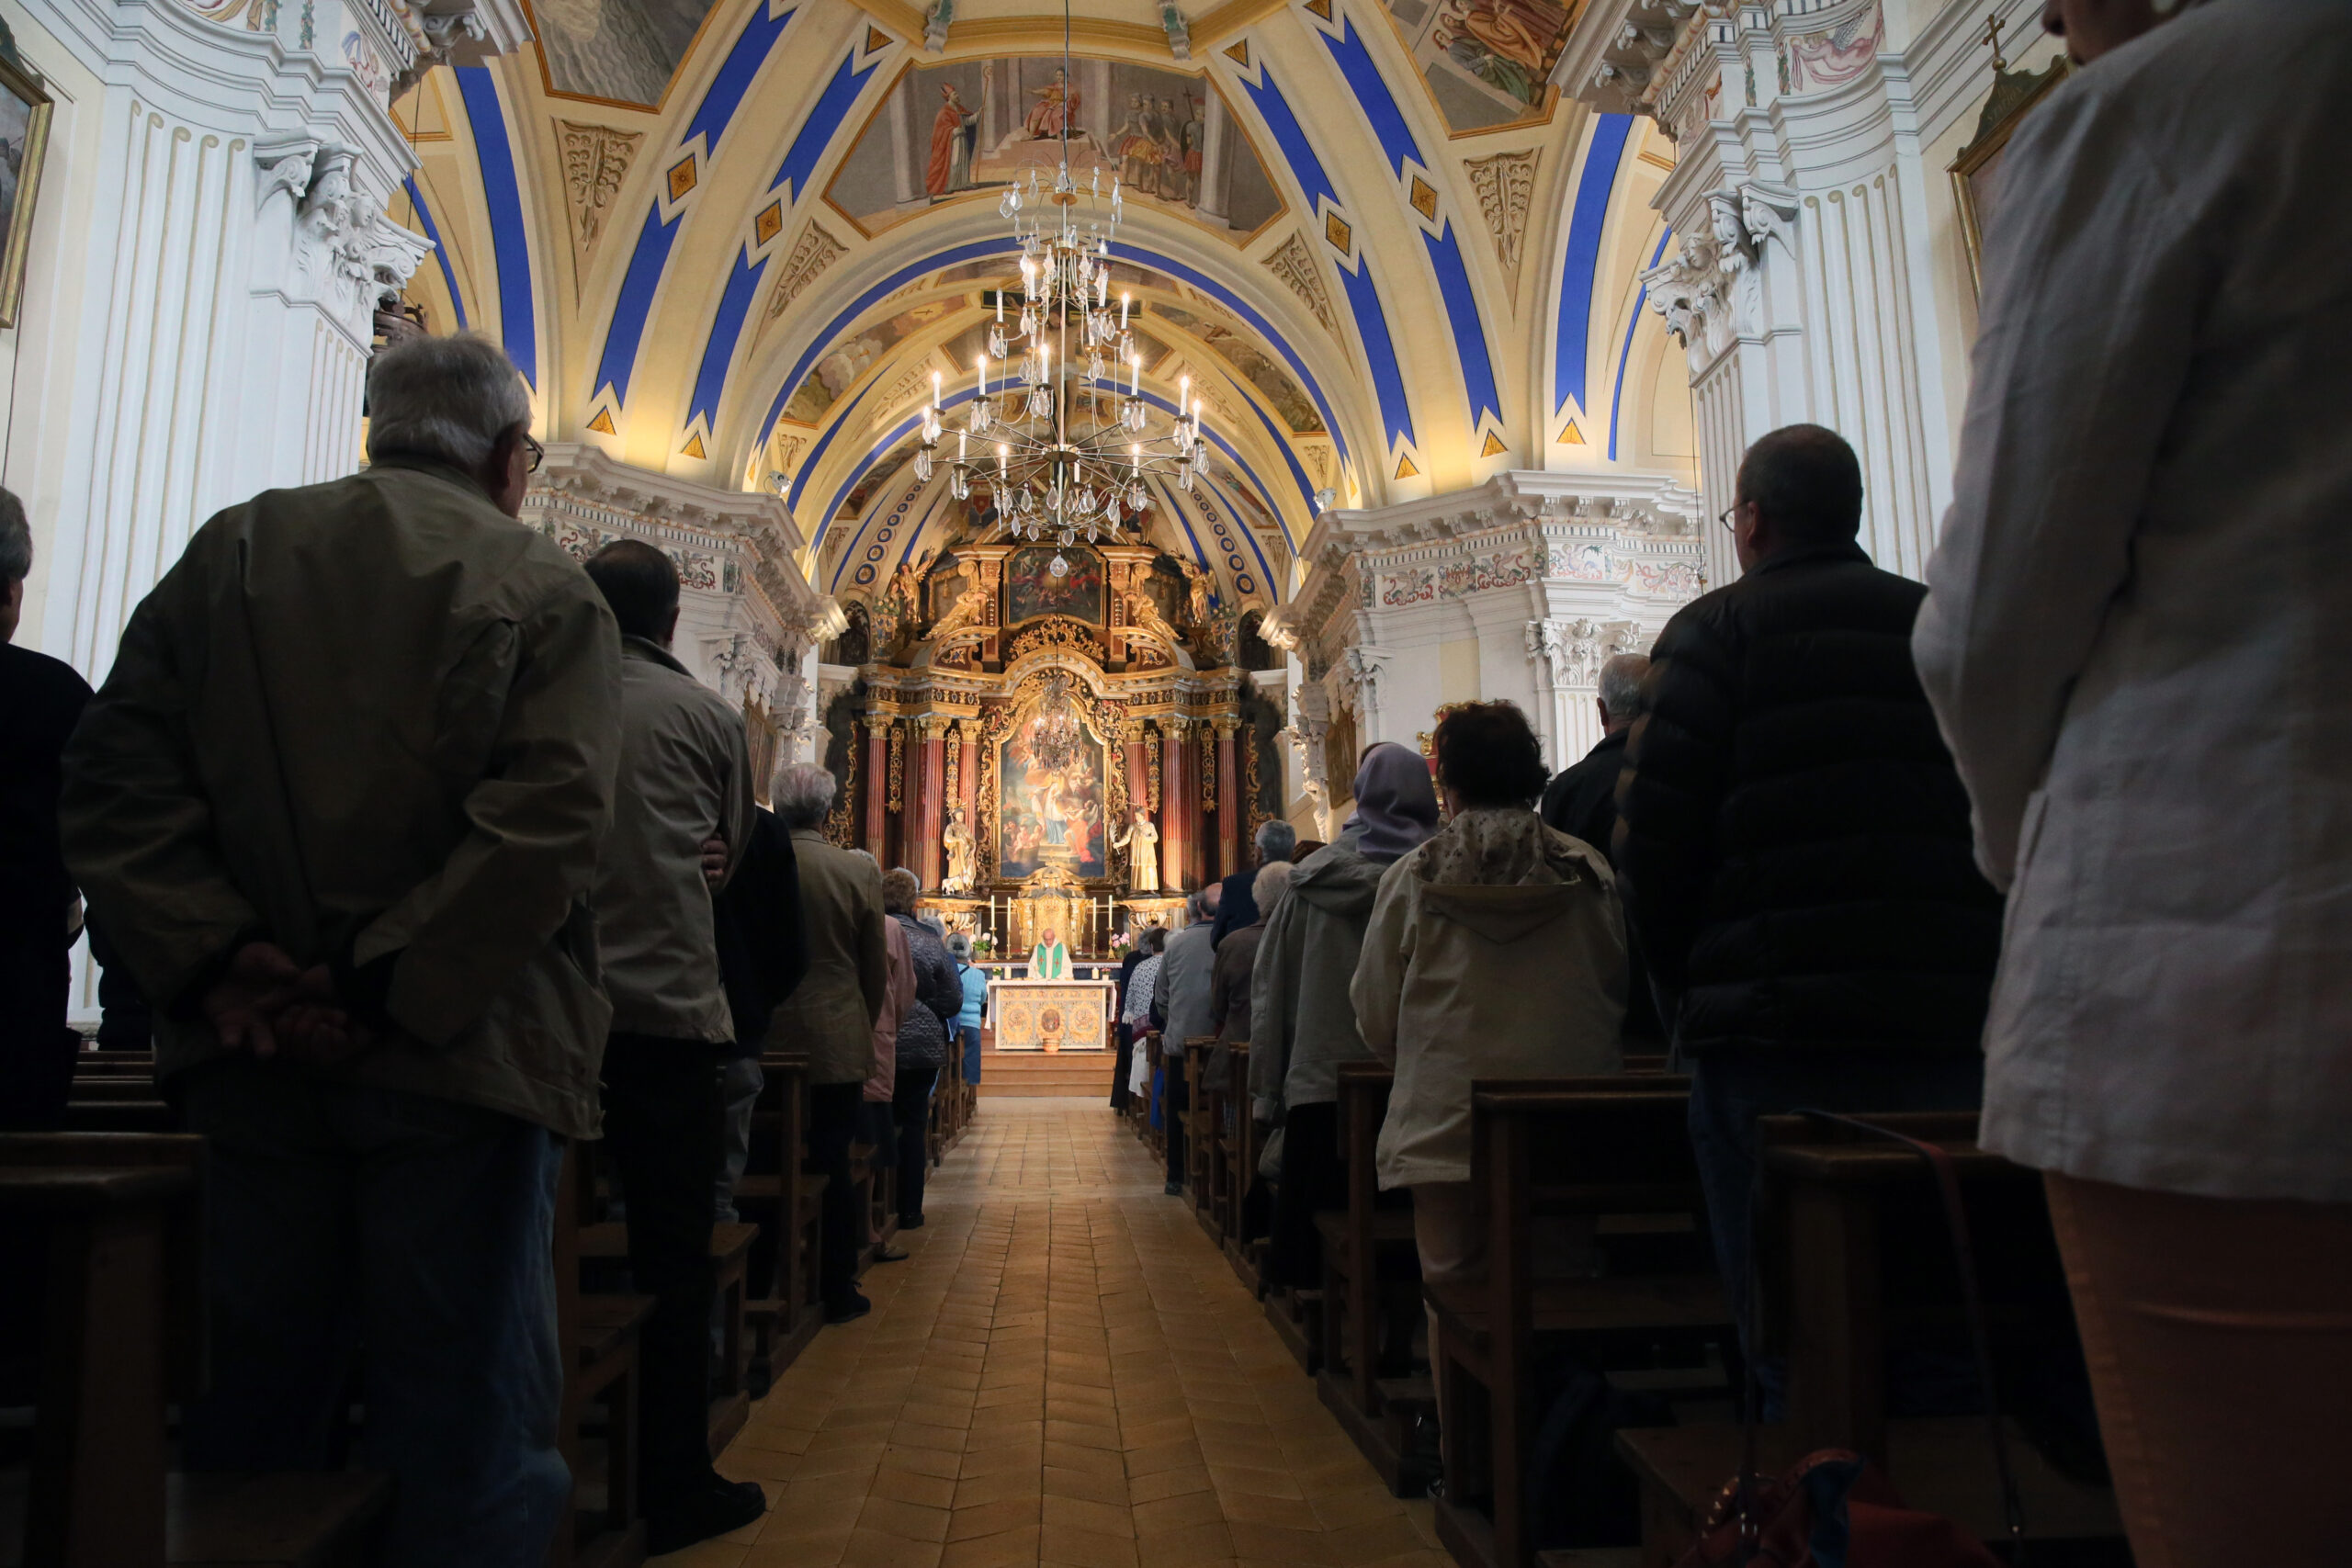 The Liturgy is for the People